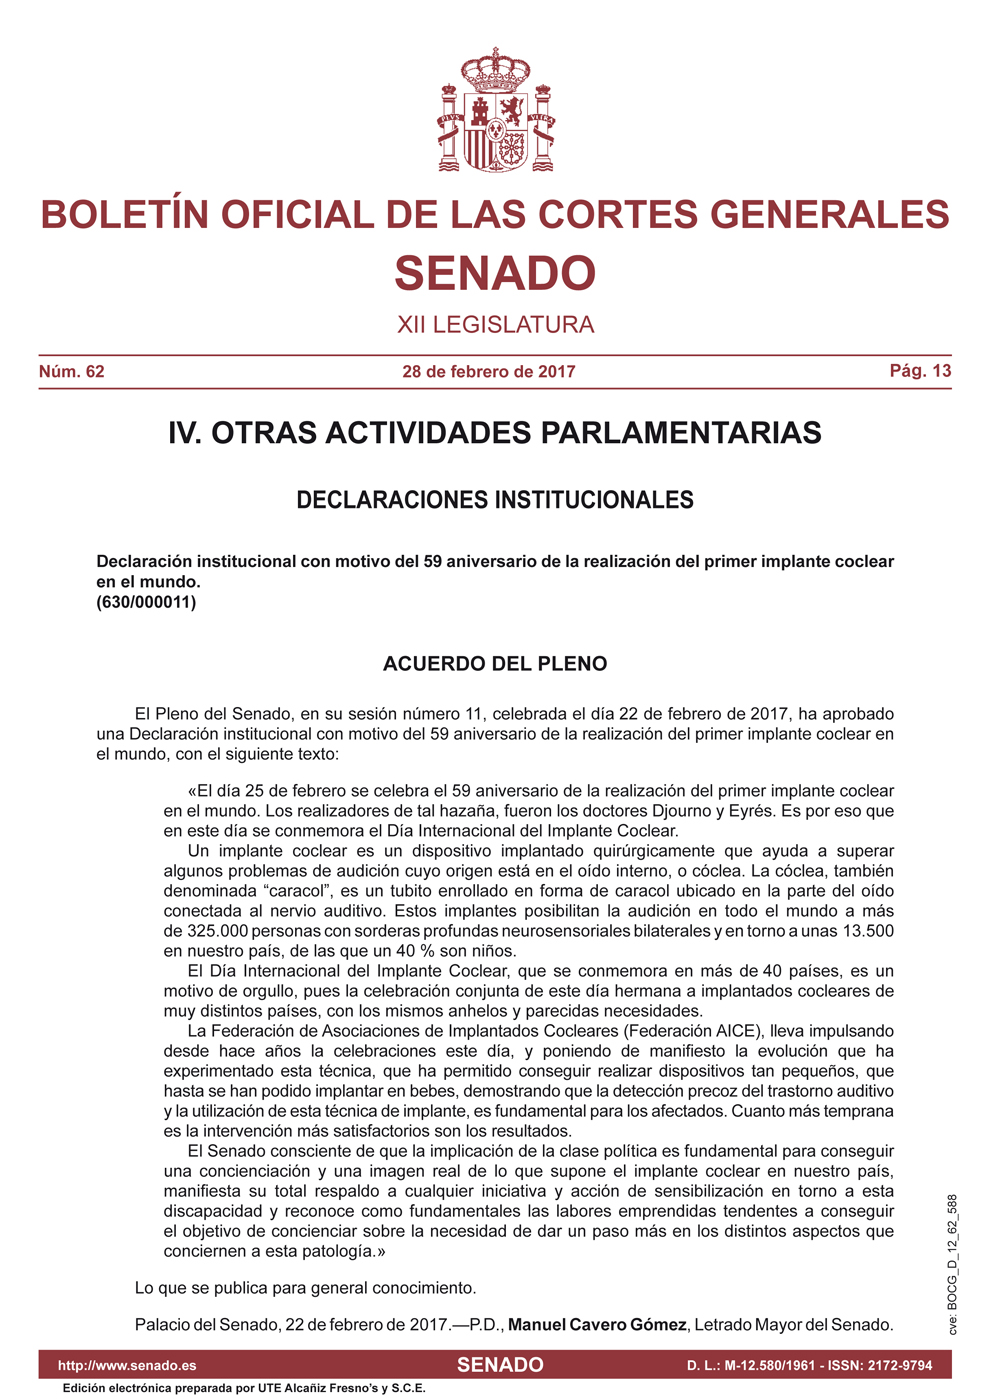 Image: The Statement printed in the Official Journal of the Spanish Senate